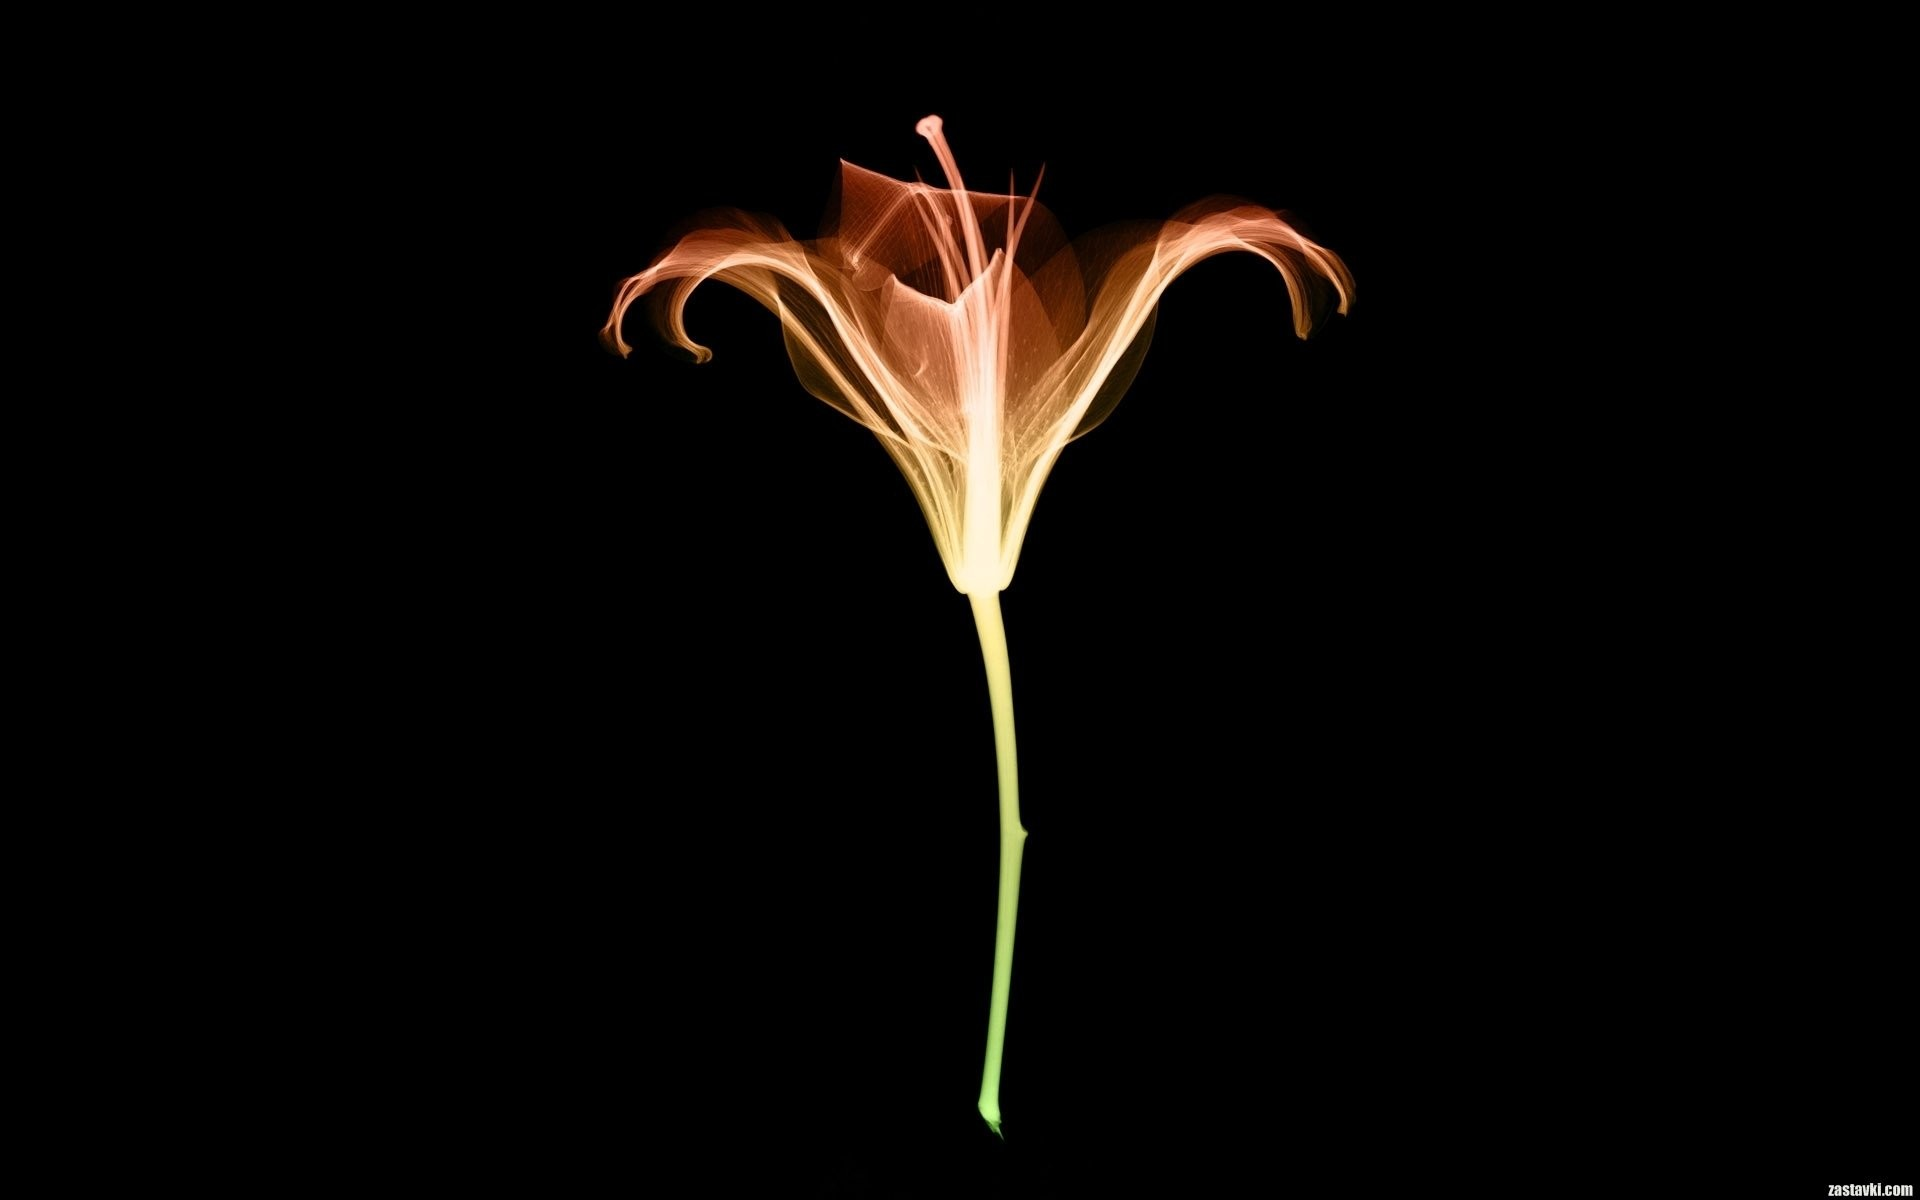 1920x1200, X Ray Wallpaper Wallpapers For Free Download - X Ray Flowers - HD Wallpaper